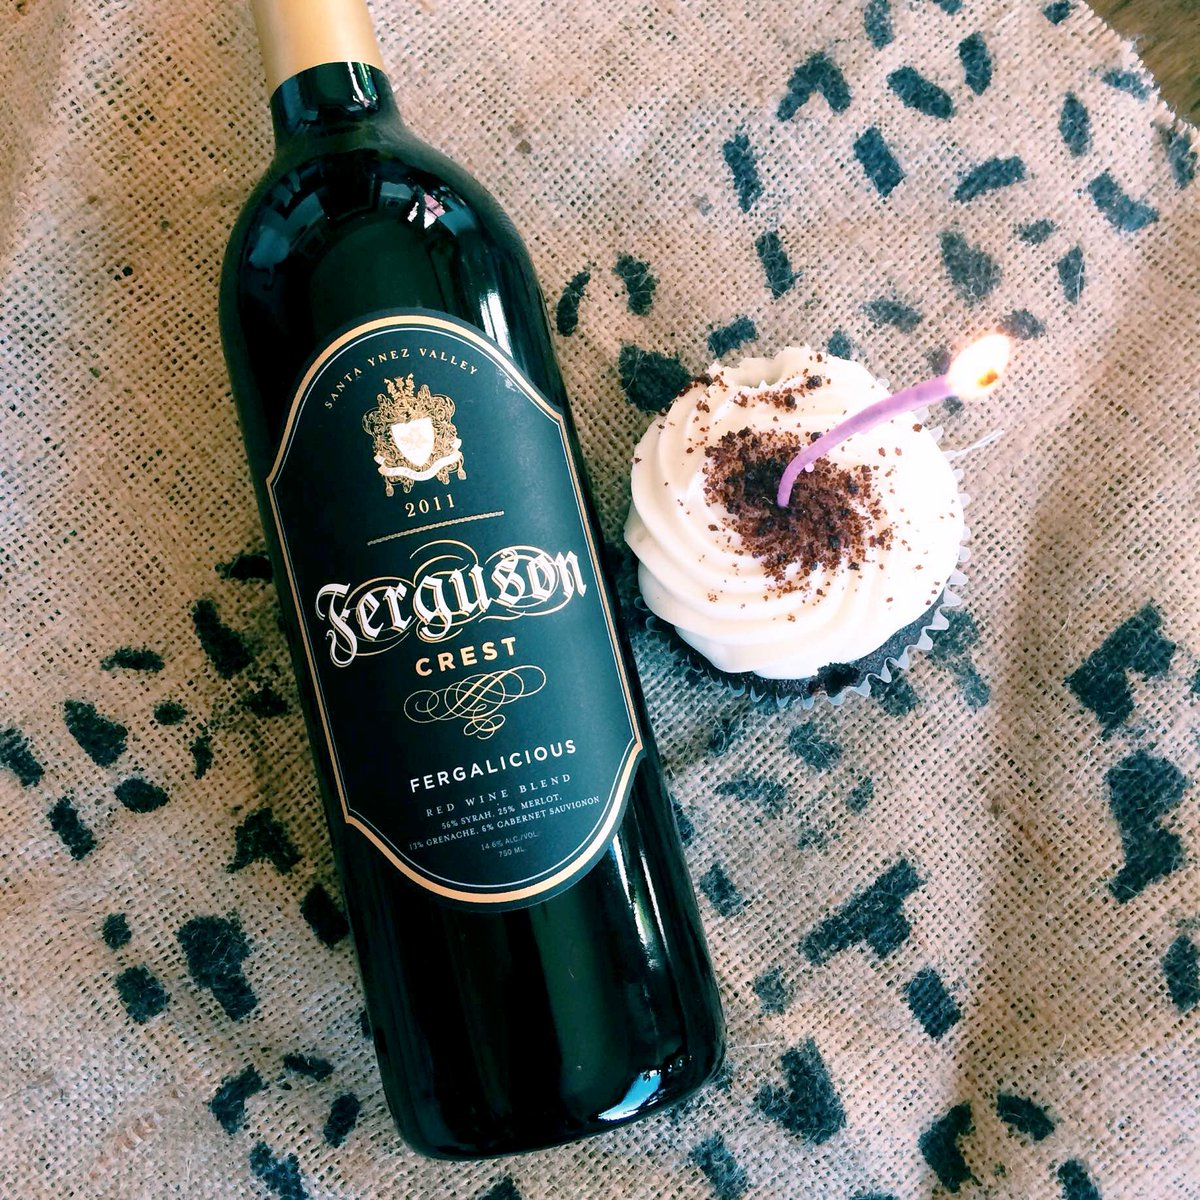 RT @FergusonCrest: #MakeAWish w/ 25% OFF 2011 #Fergalicious #redwine til 3/31. #fergie #happybirthday #winesale https://t.co/6ckc3dgwTq htt…